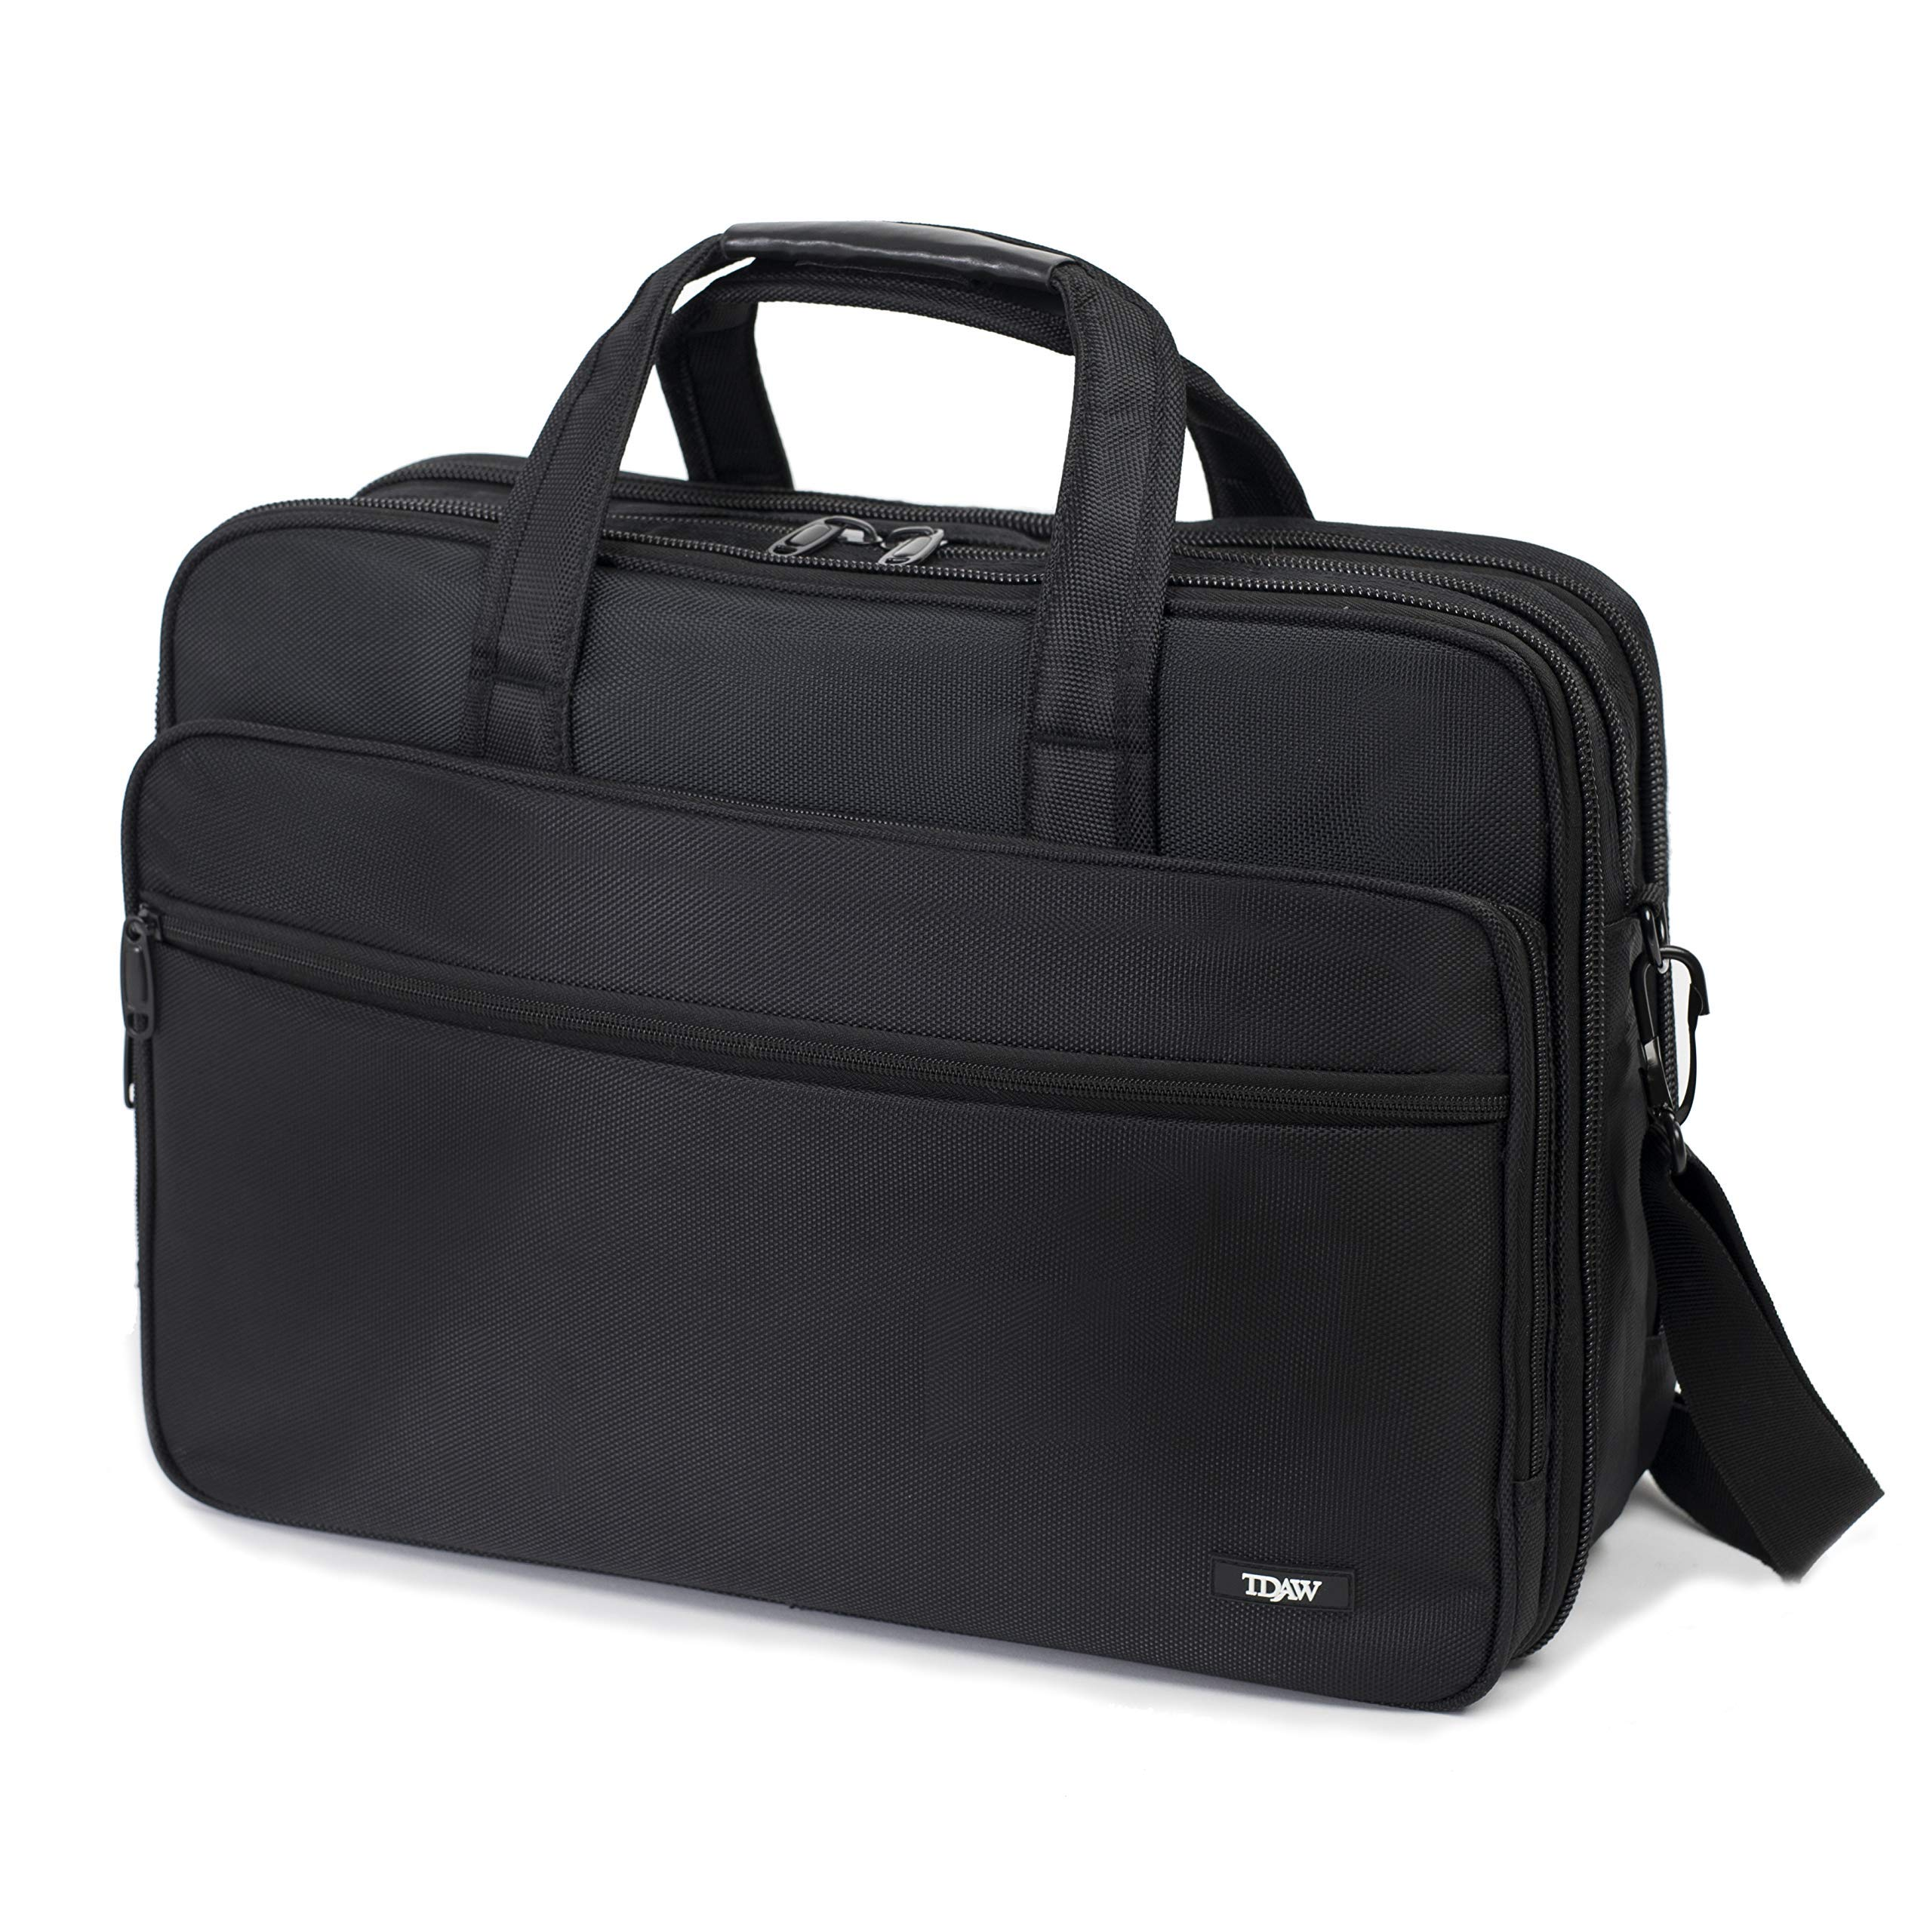 [tdaw] 17 inch Laptop Computer Bag, Laptop Case/Travel Briefcase or Messenger Bag/Expandable Large Size & Extra Strong Multifunctional & Water Resistant Bag for Men and Women